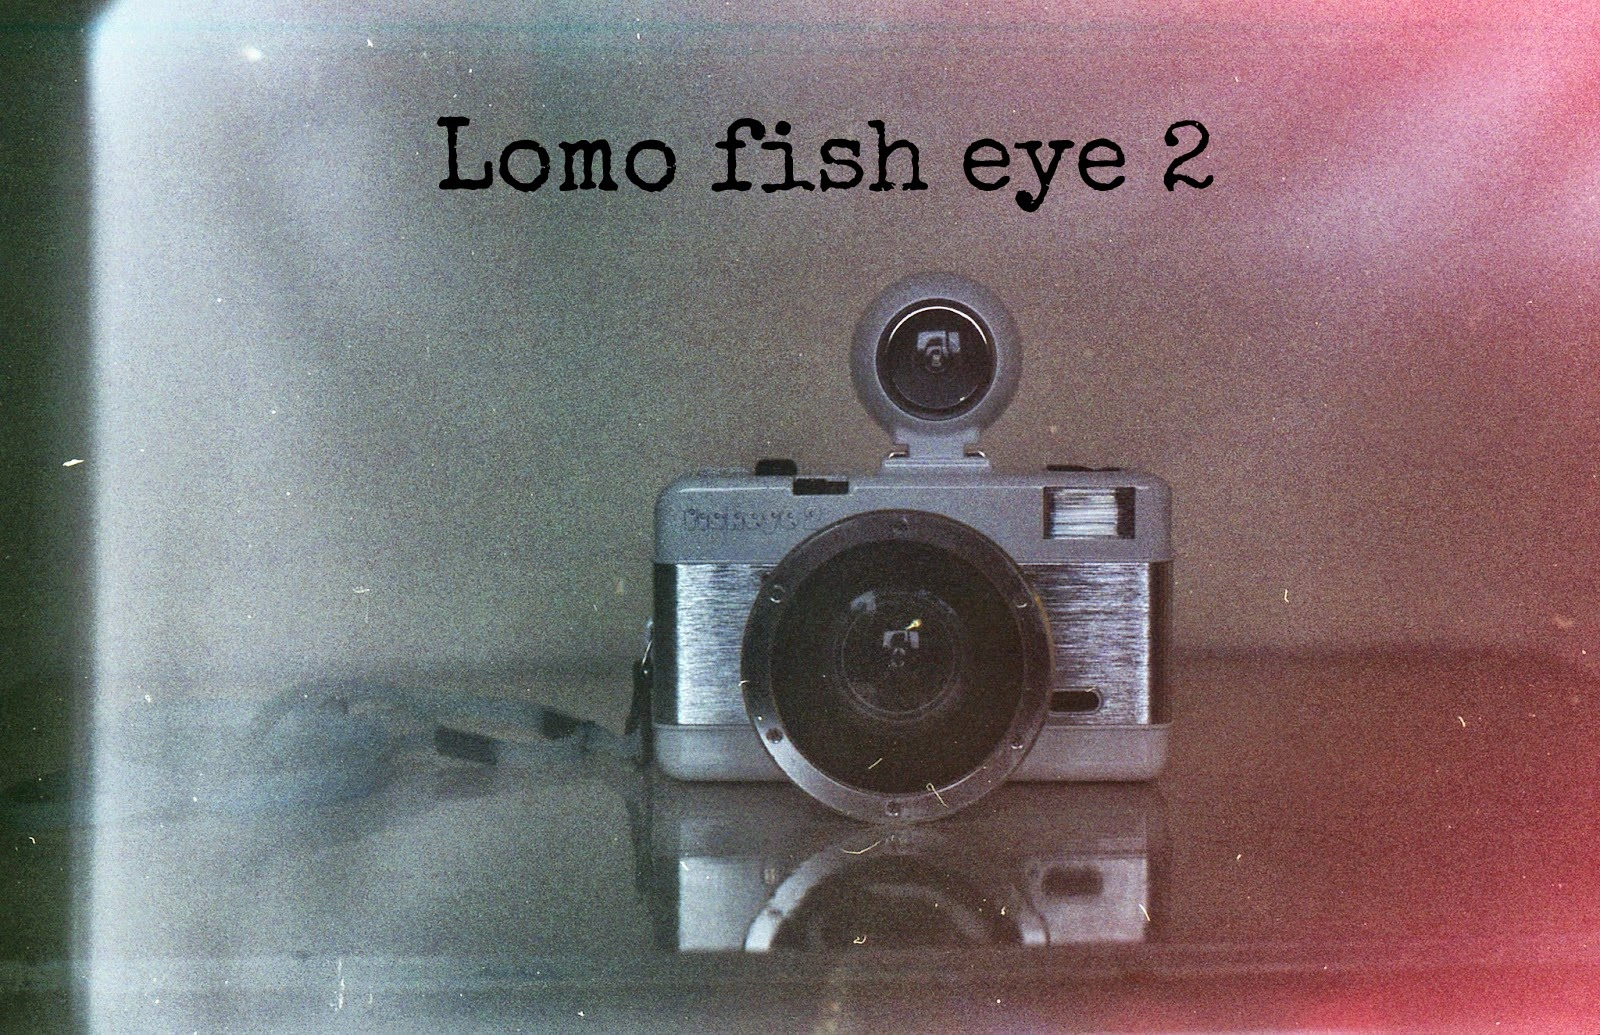 http://talesonfilm.blogspot.co.uk/2014/05/lomo-fish-eye-2.html